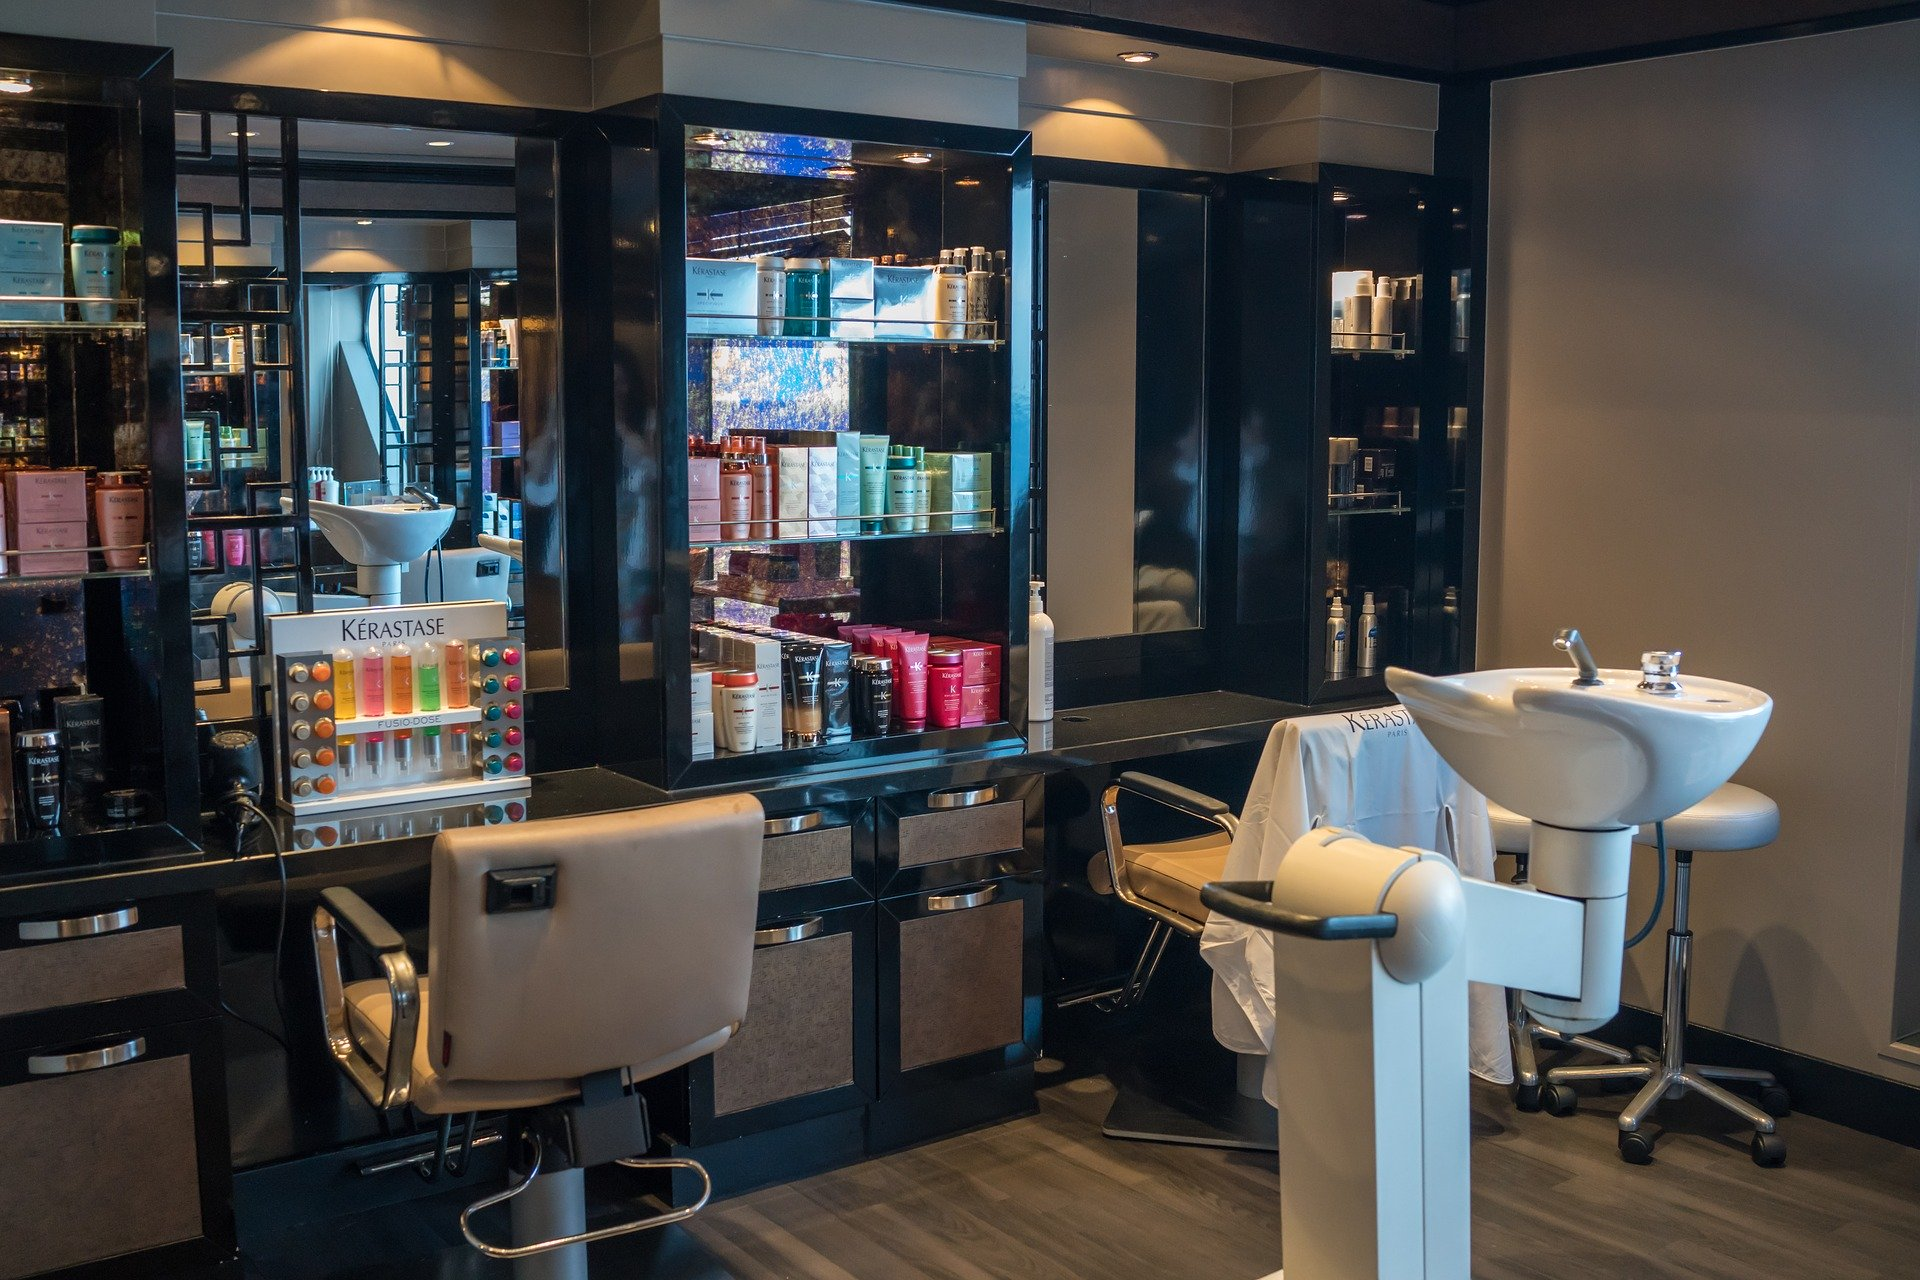 BREAKING NEWS: CA Statewide Order Requires Hair and Nails Salons to Close for at Least Three Weeks